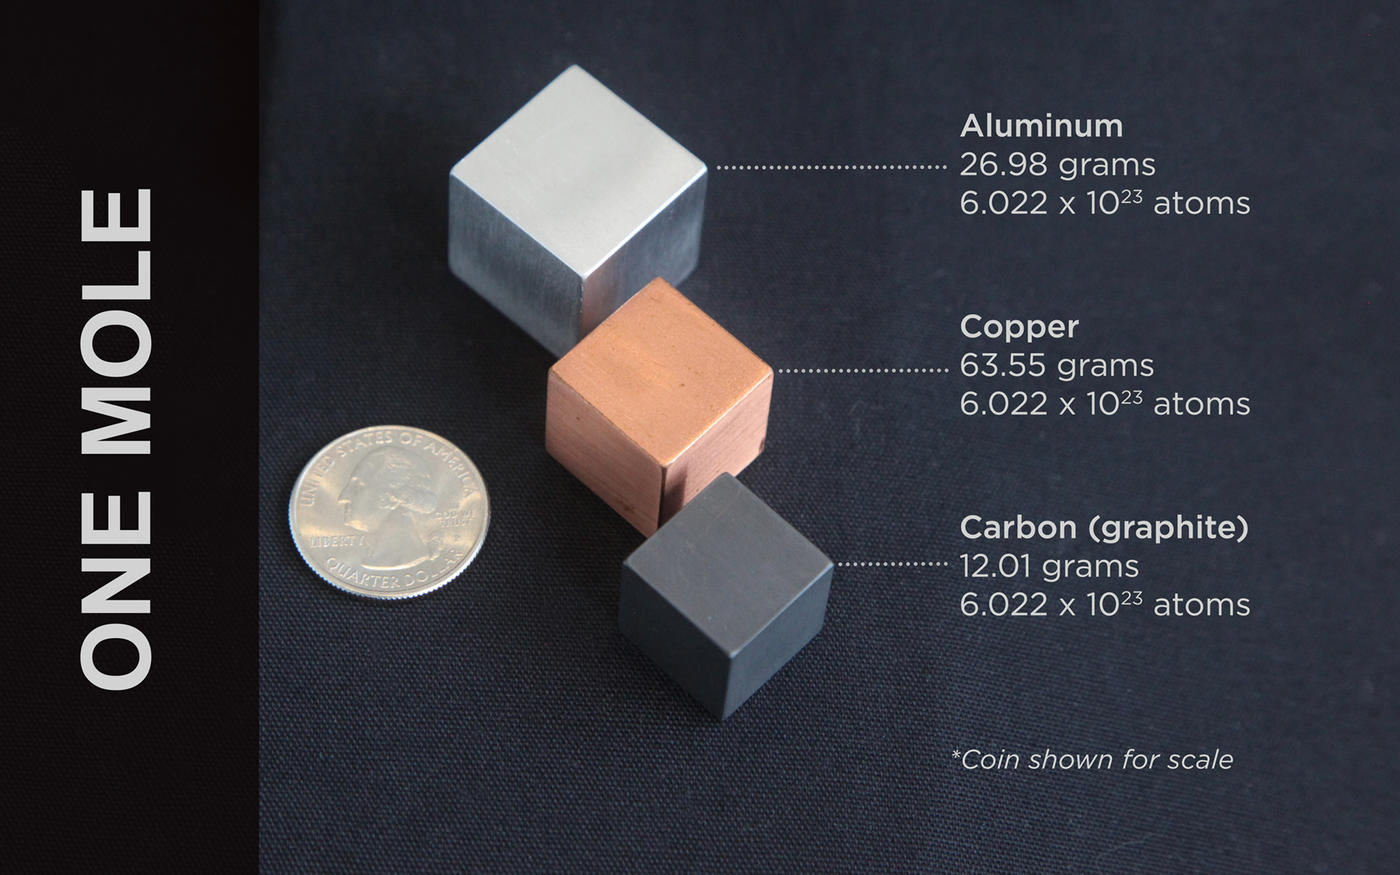 three metal cubes: aluminum, copper and carbon. Next to the cubes is a quarter to show relative size and mass. All three are one mole's worth of atoms.